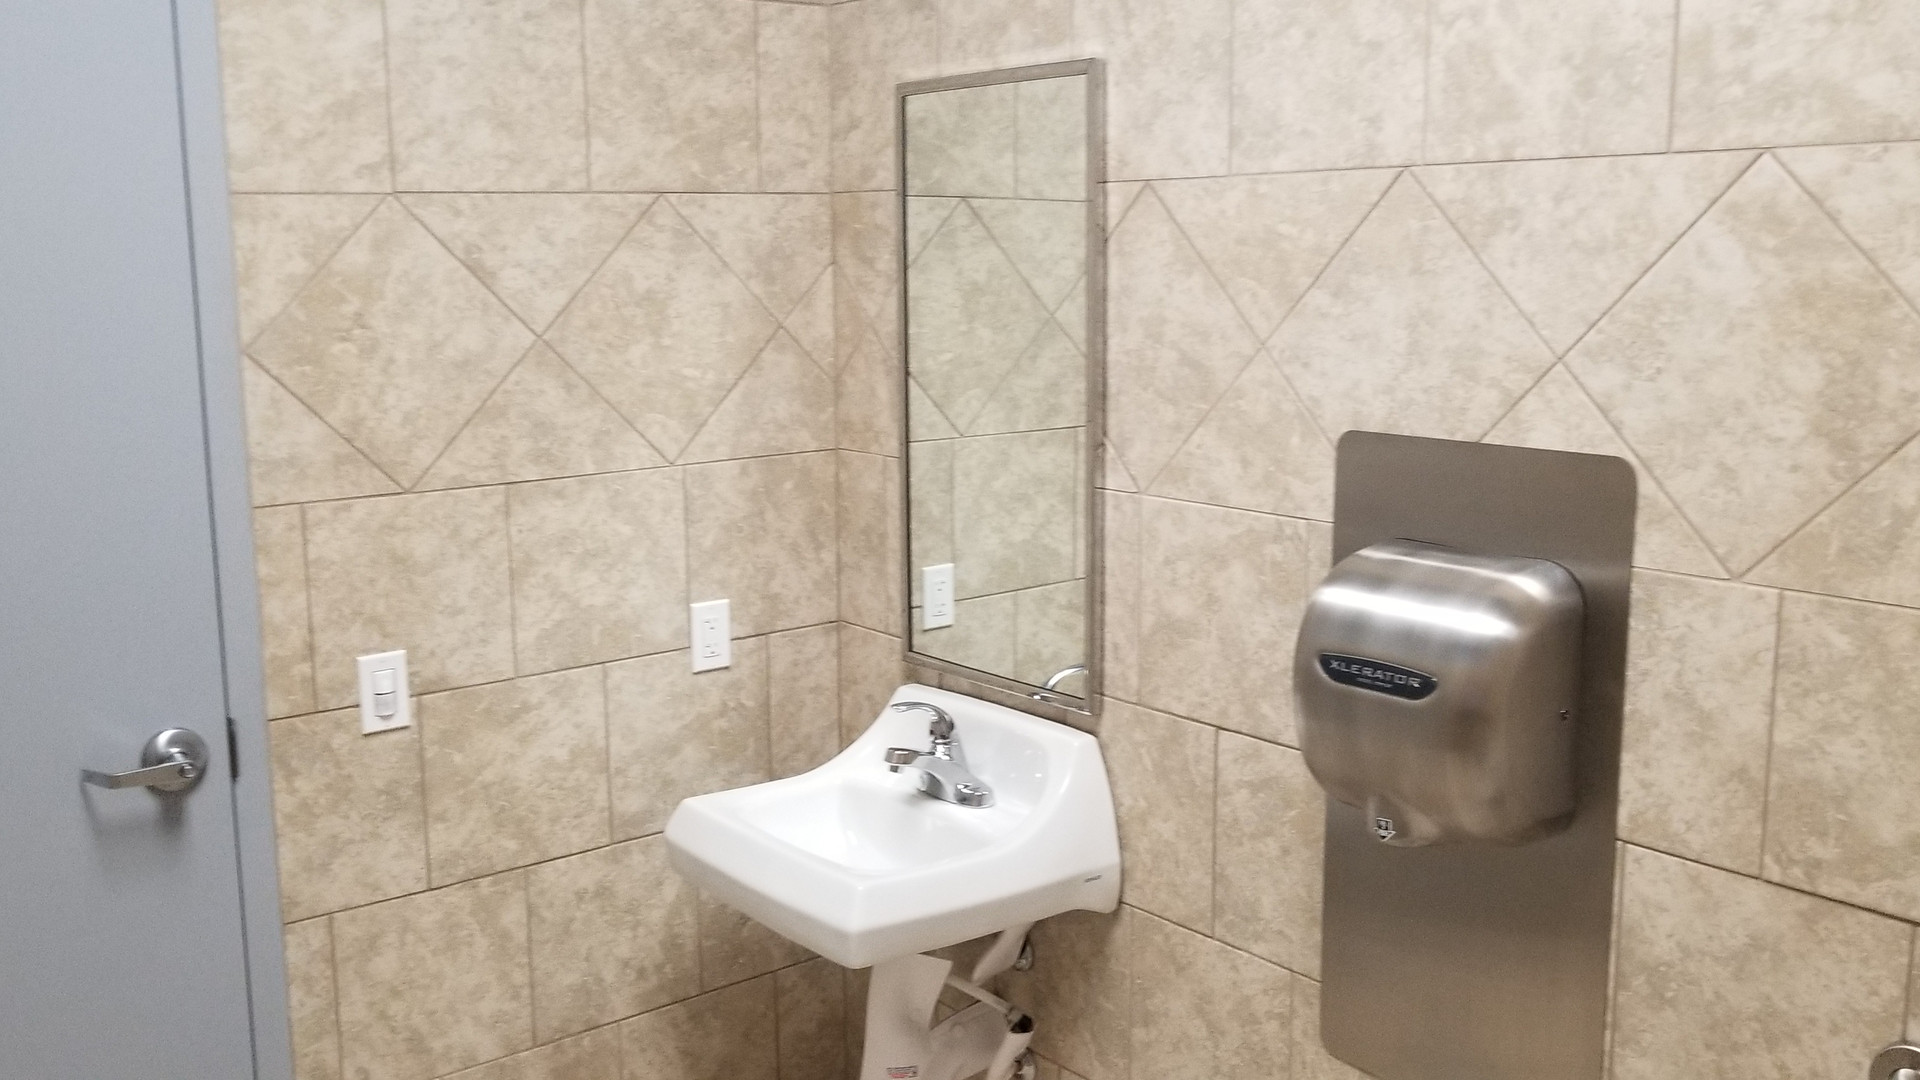 Sink and Hand-dryer - Buildout Pros